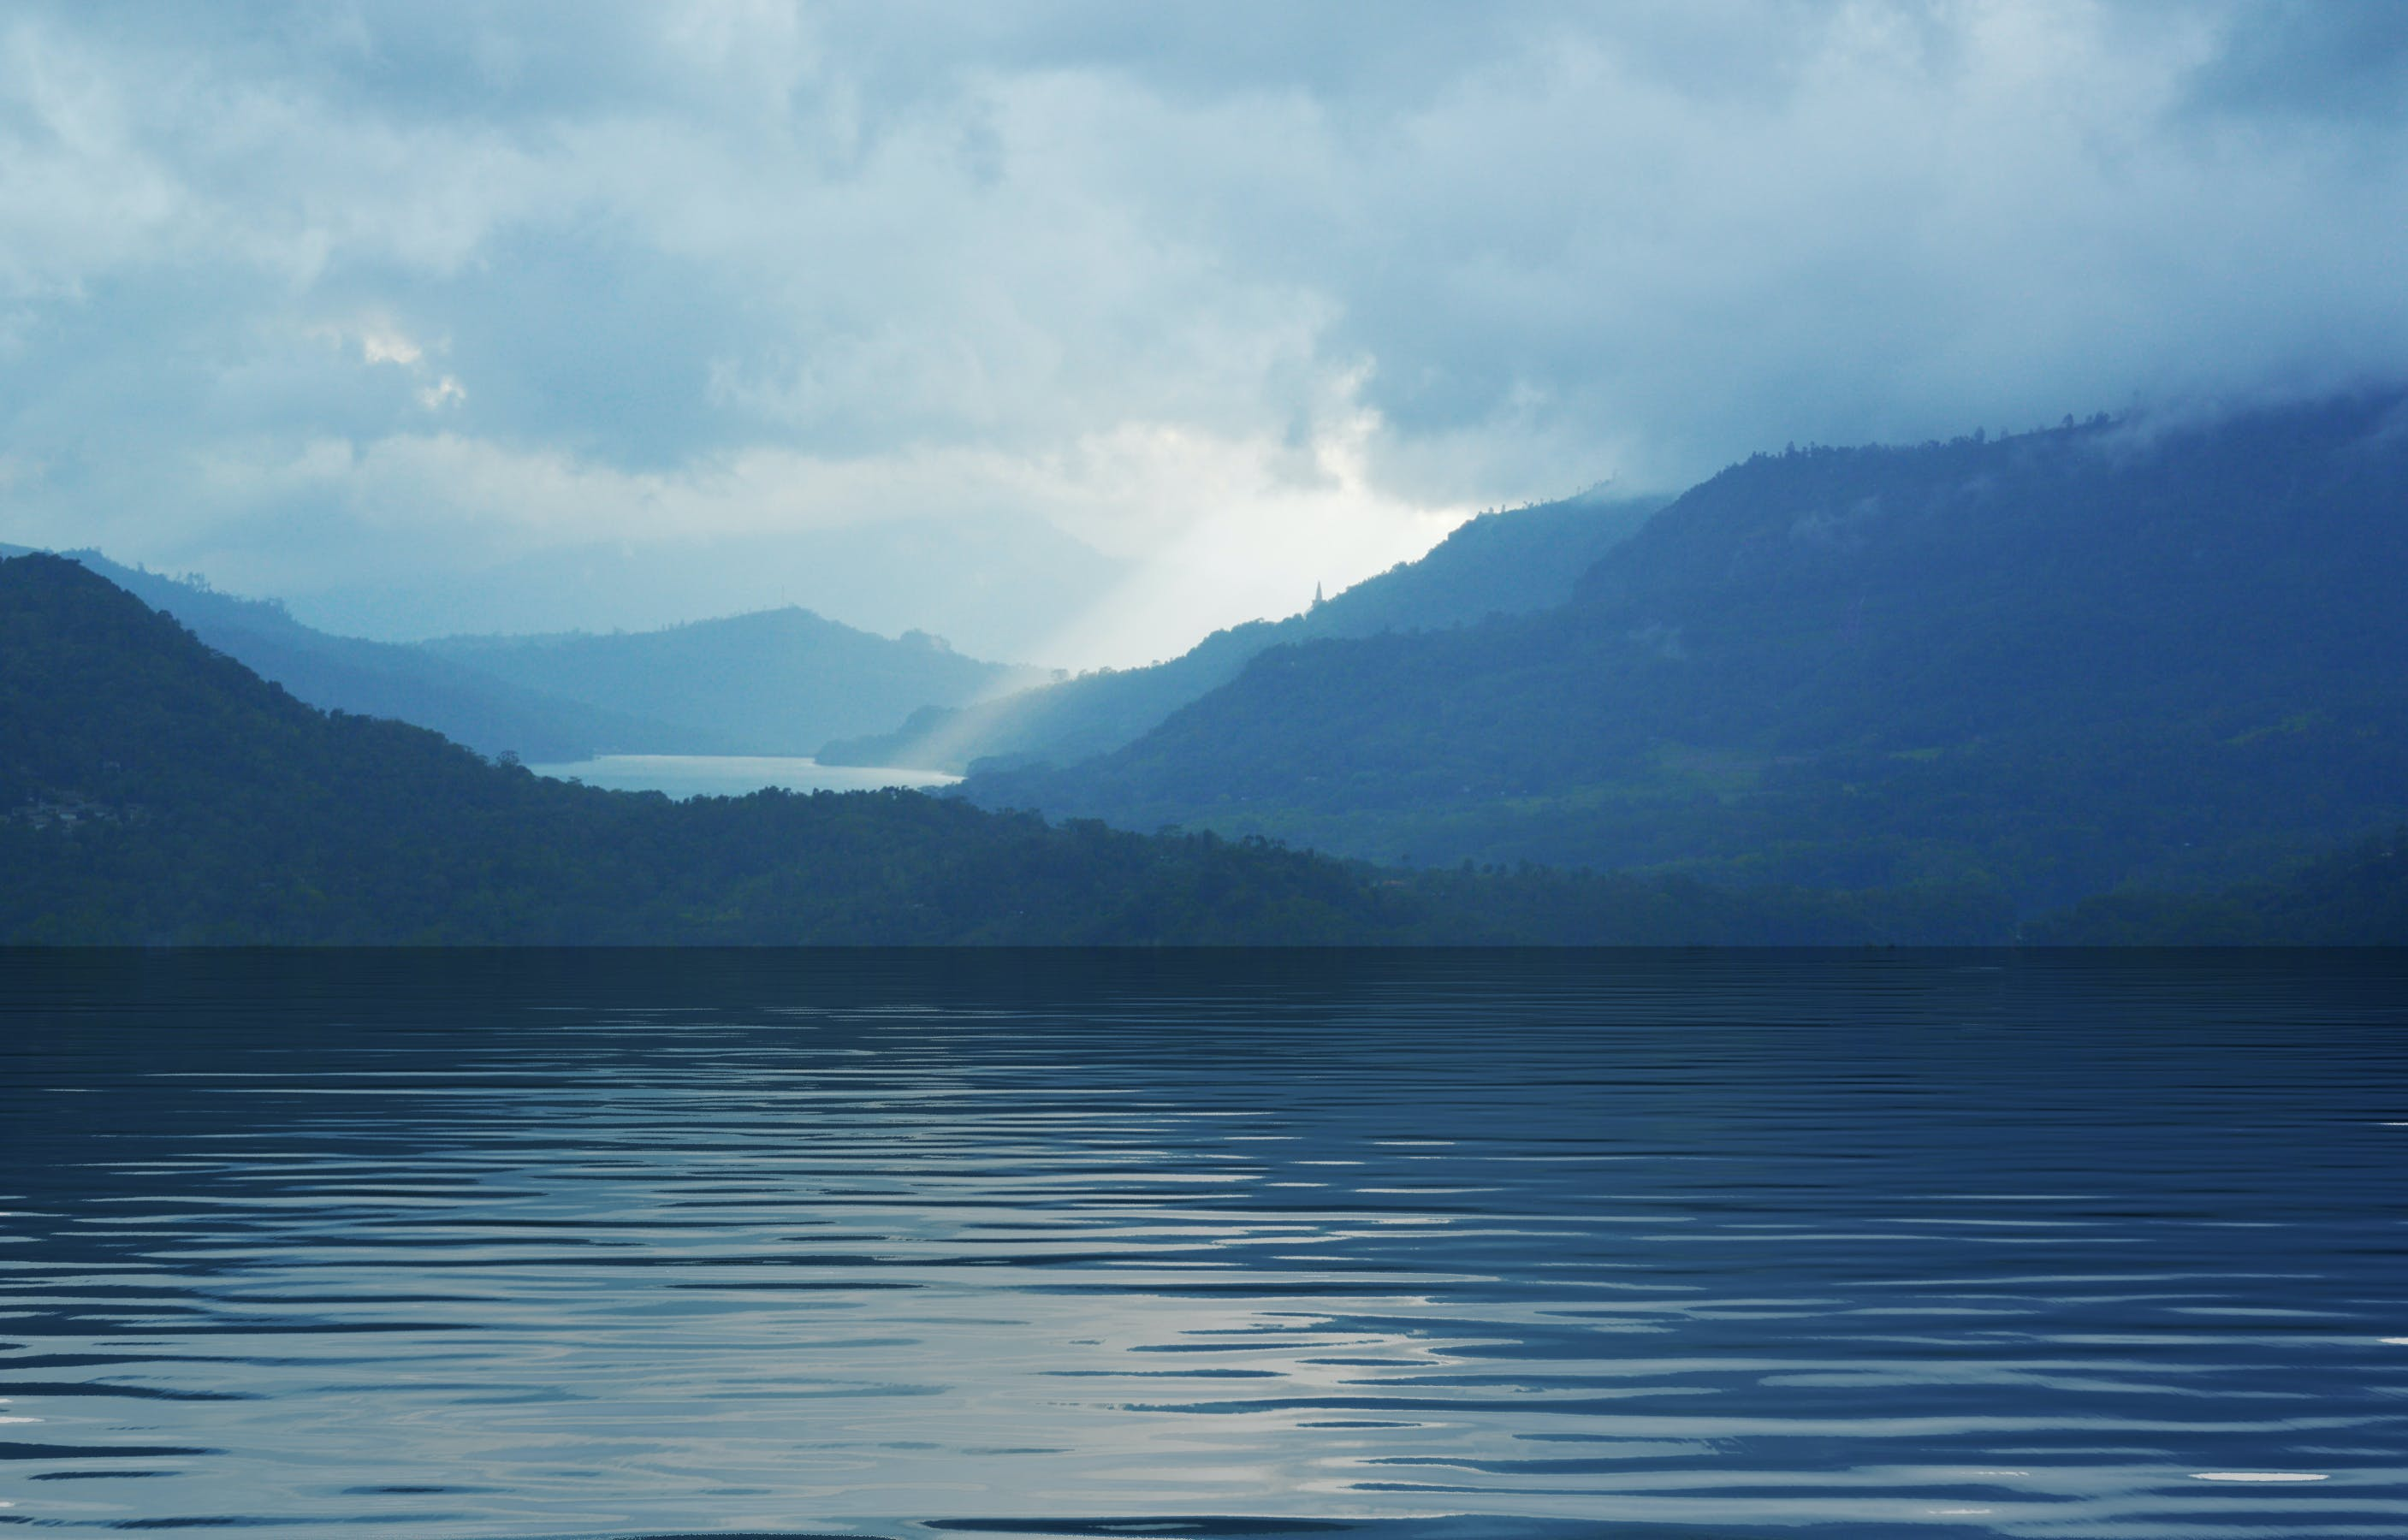 Free stock photo of blue mountains, blue water, blue waters, mountain